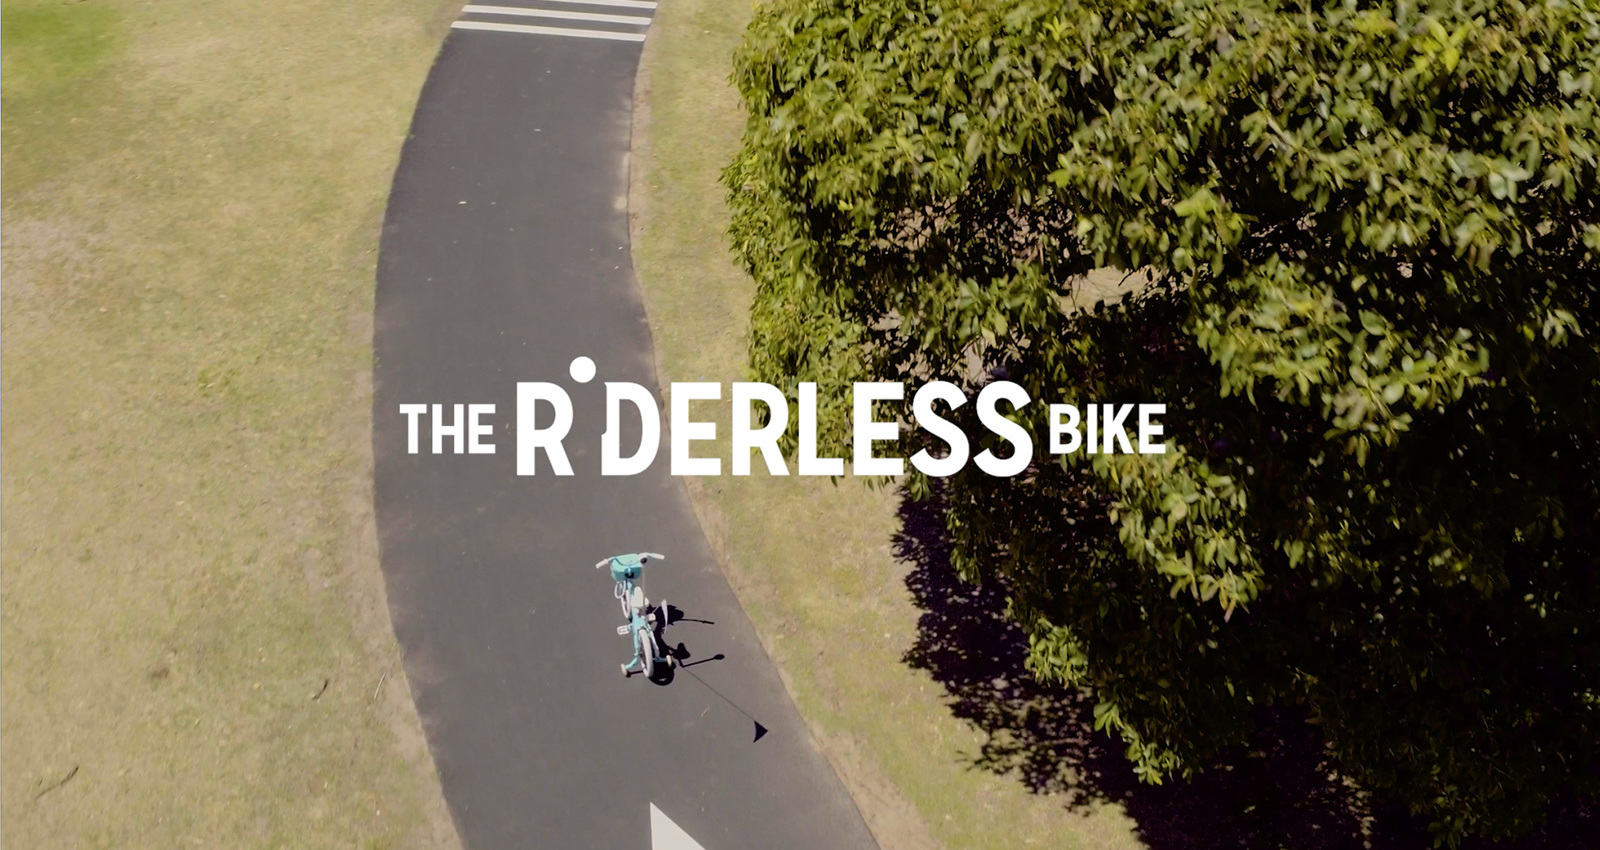 The Riderless Bike